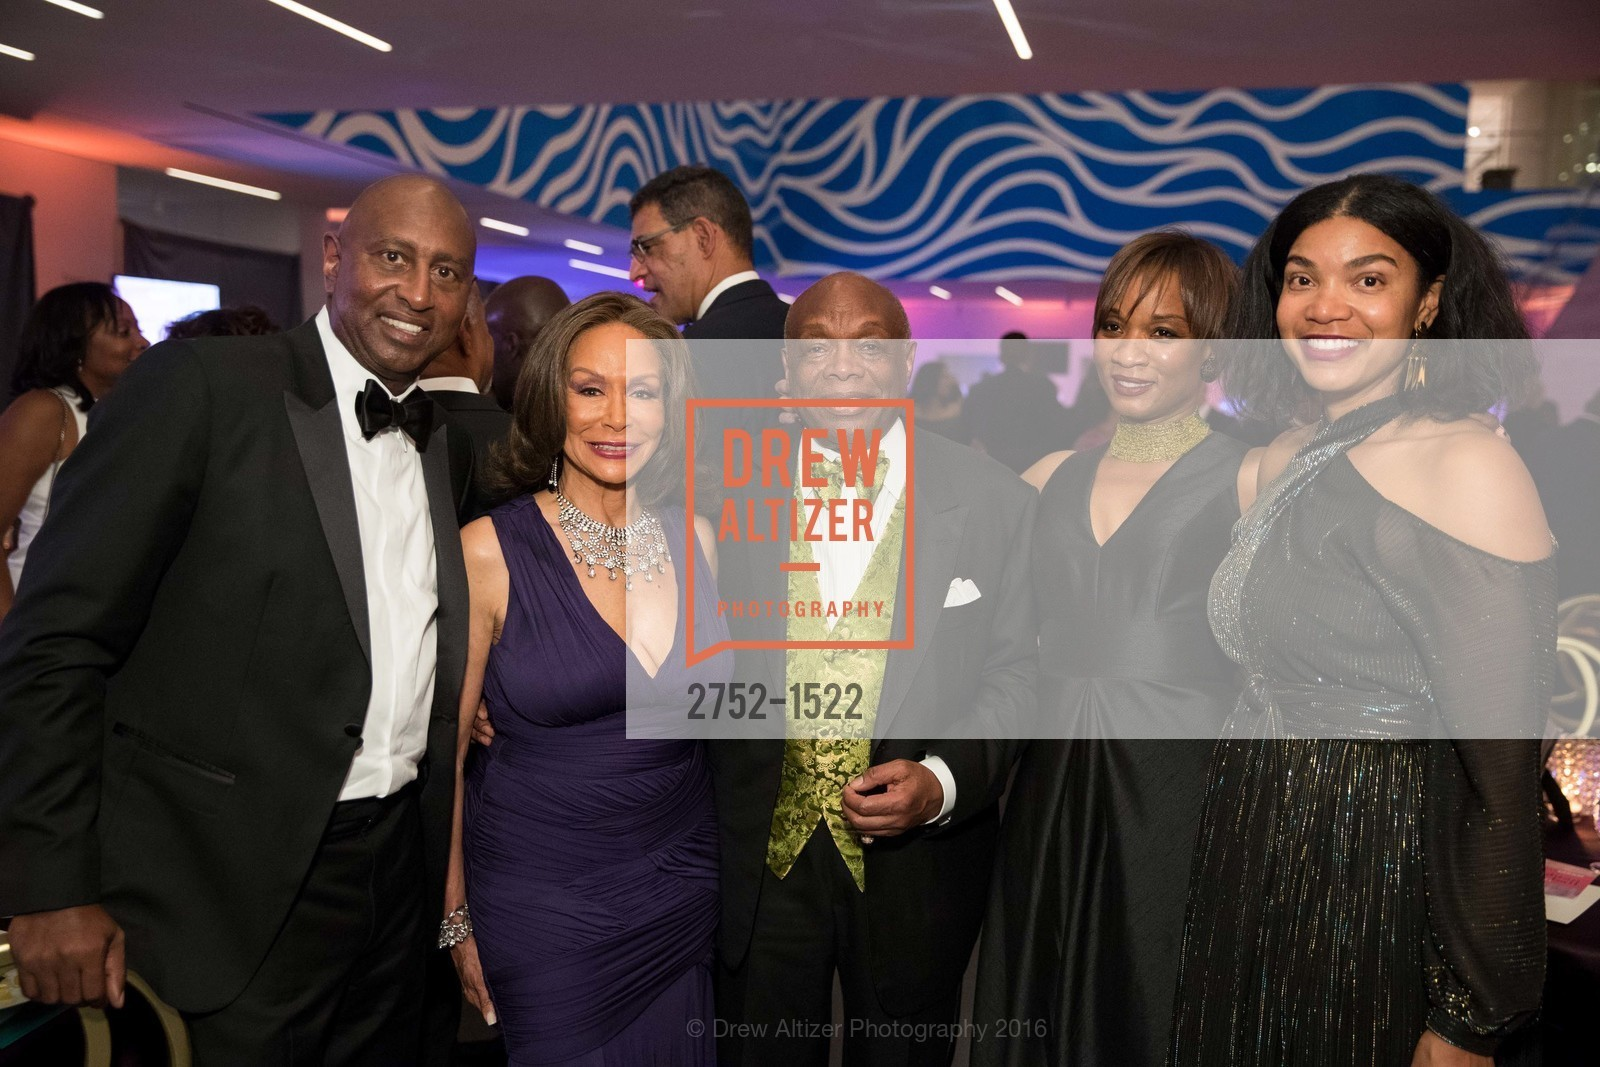 Mark Page, Freda Payne, Willie Brown, Millicent Cox Edwards, Sherri McMullen, Photo #2752-1522